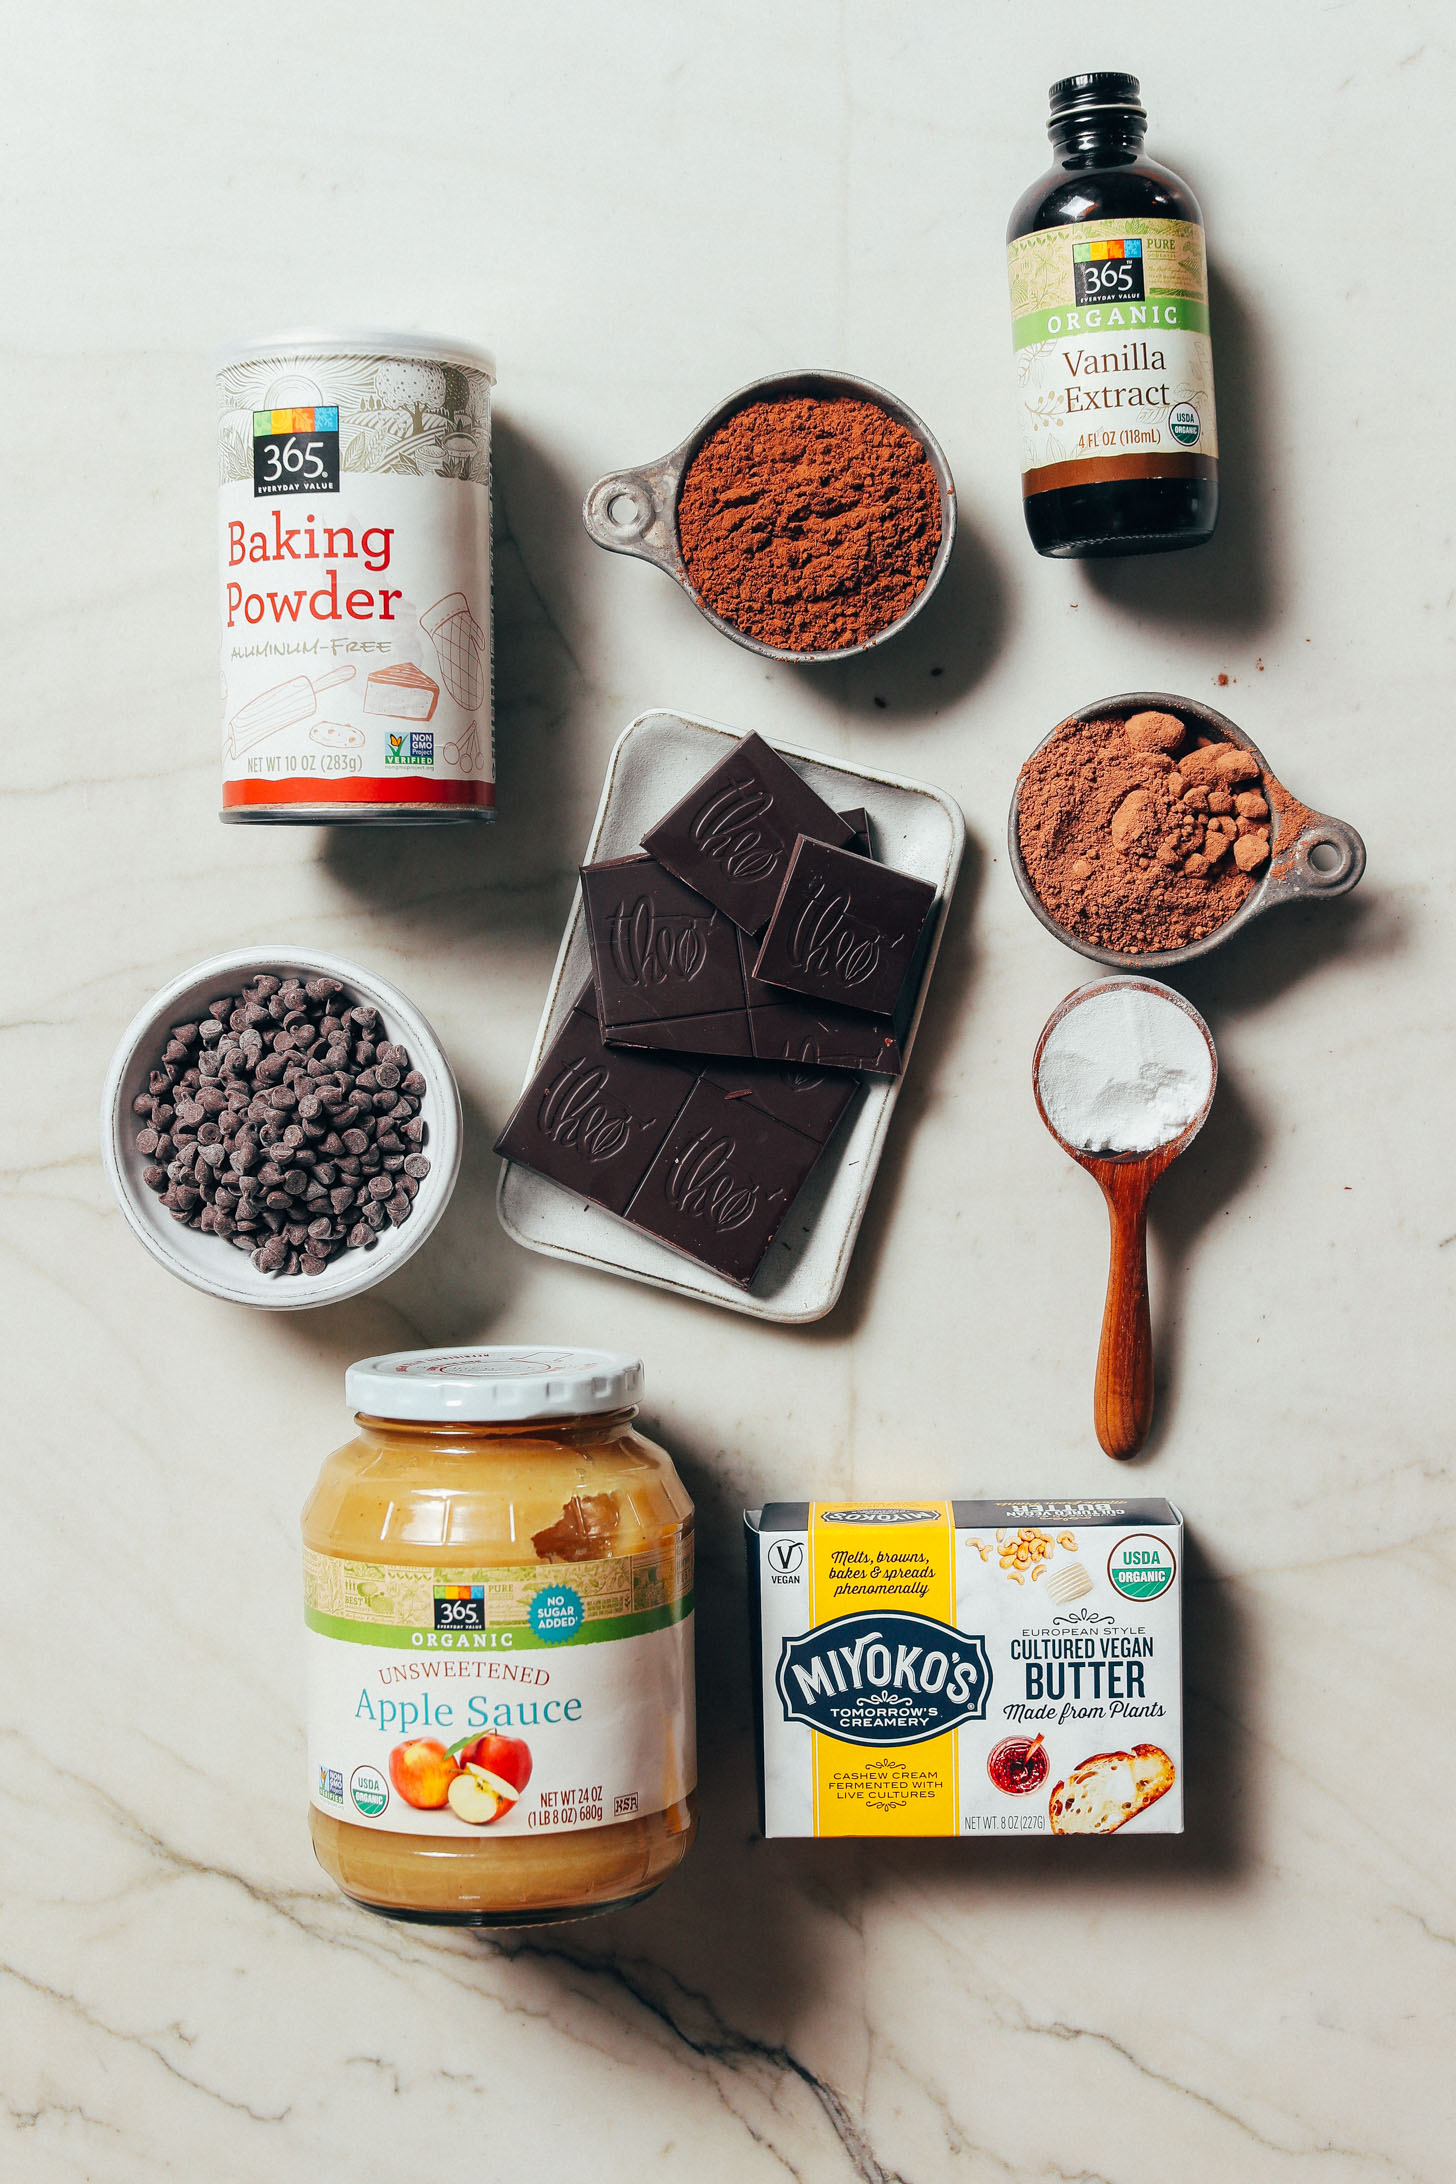 Applesauce, vegan butter, and other baking supplies for stocking a pantry for vegan baking